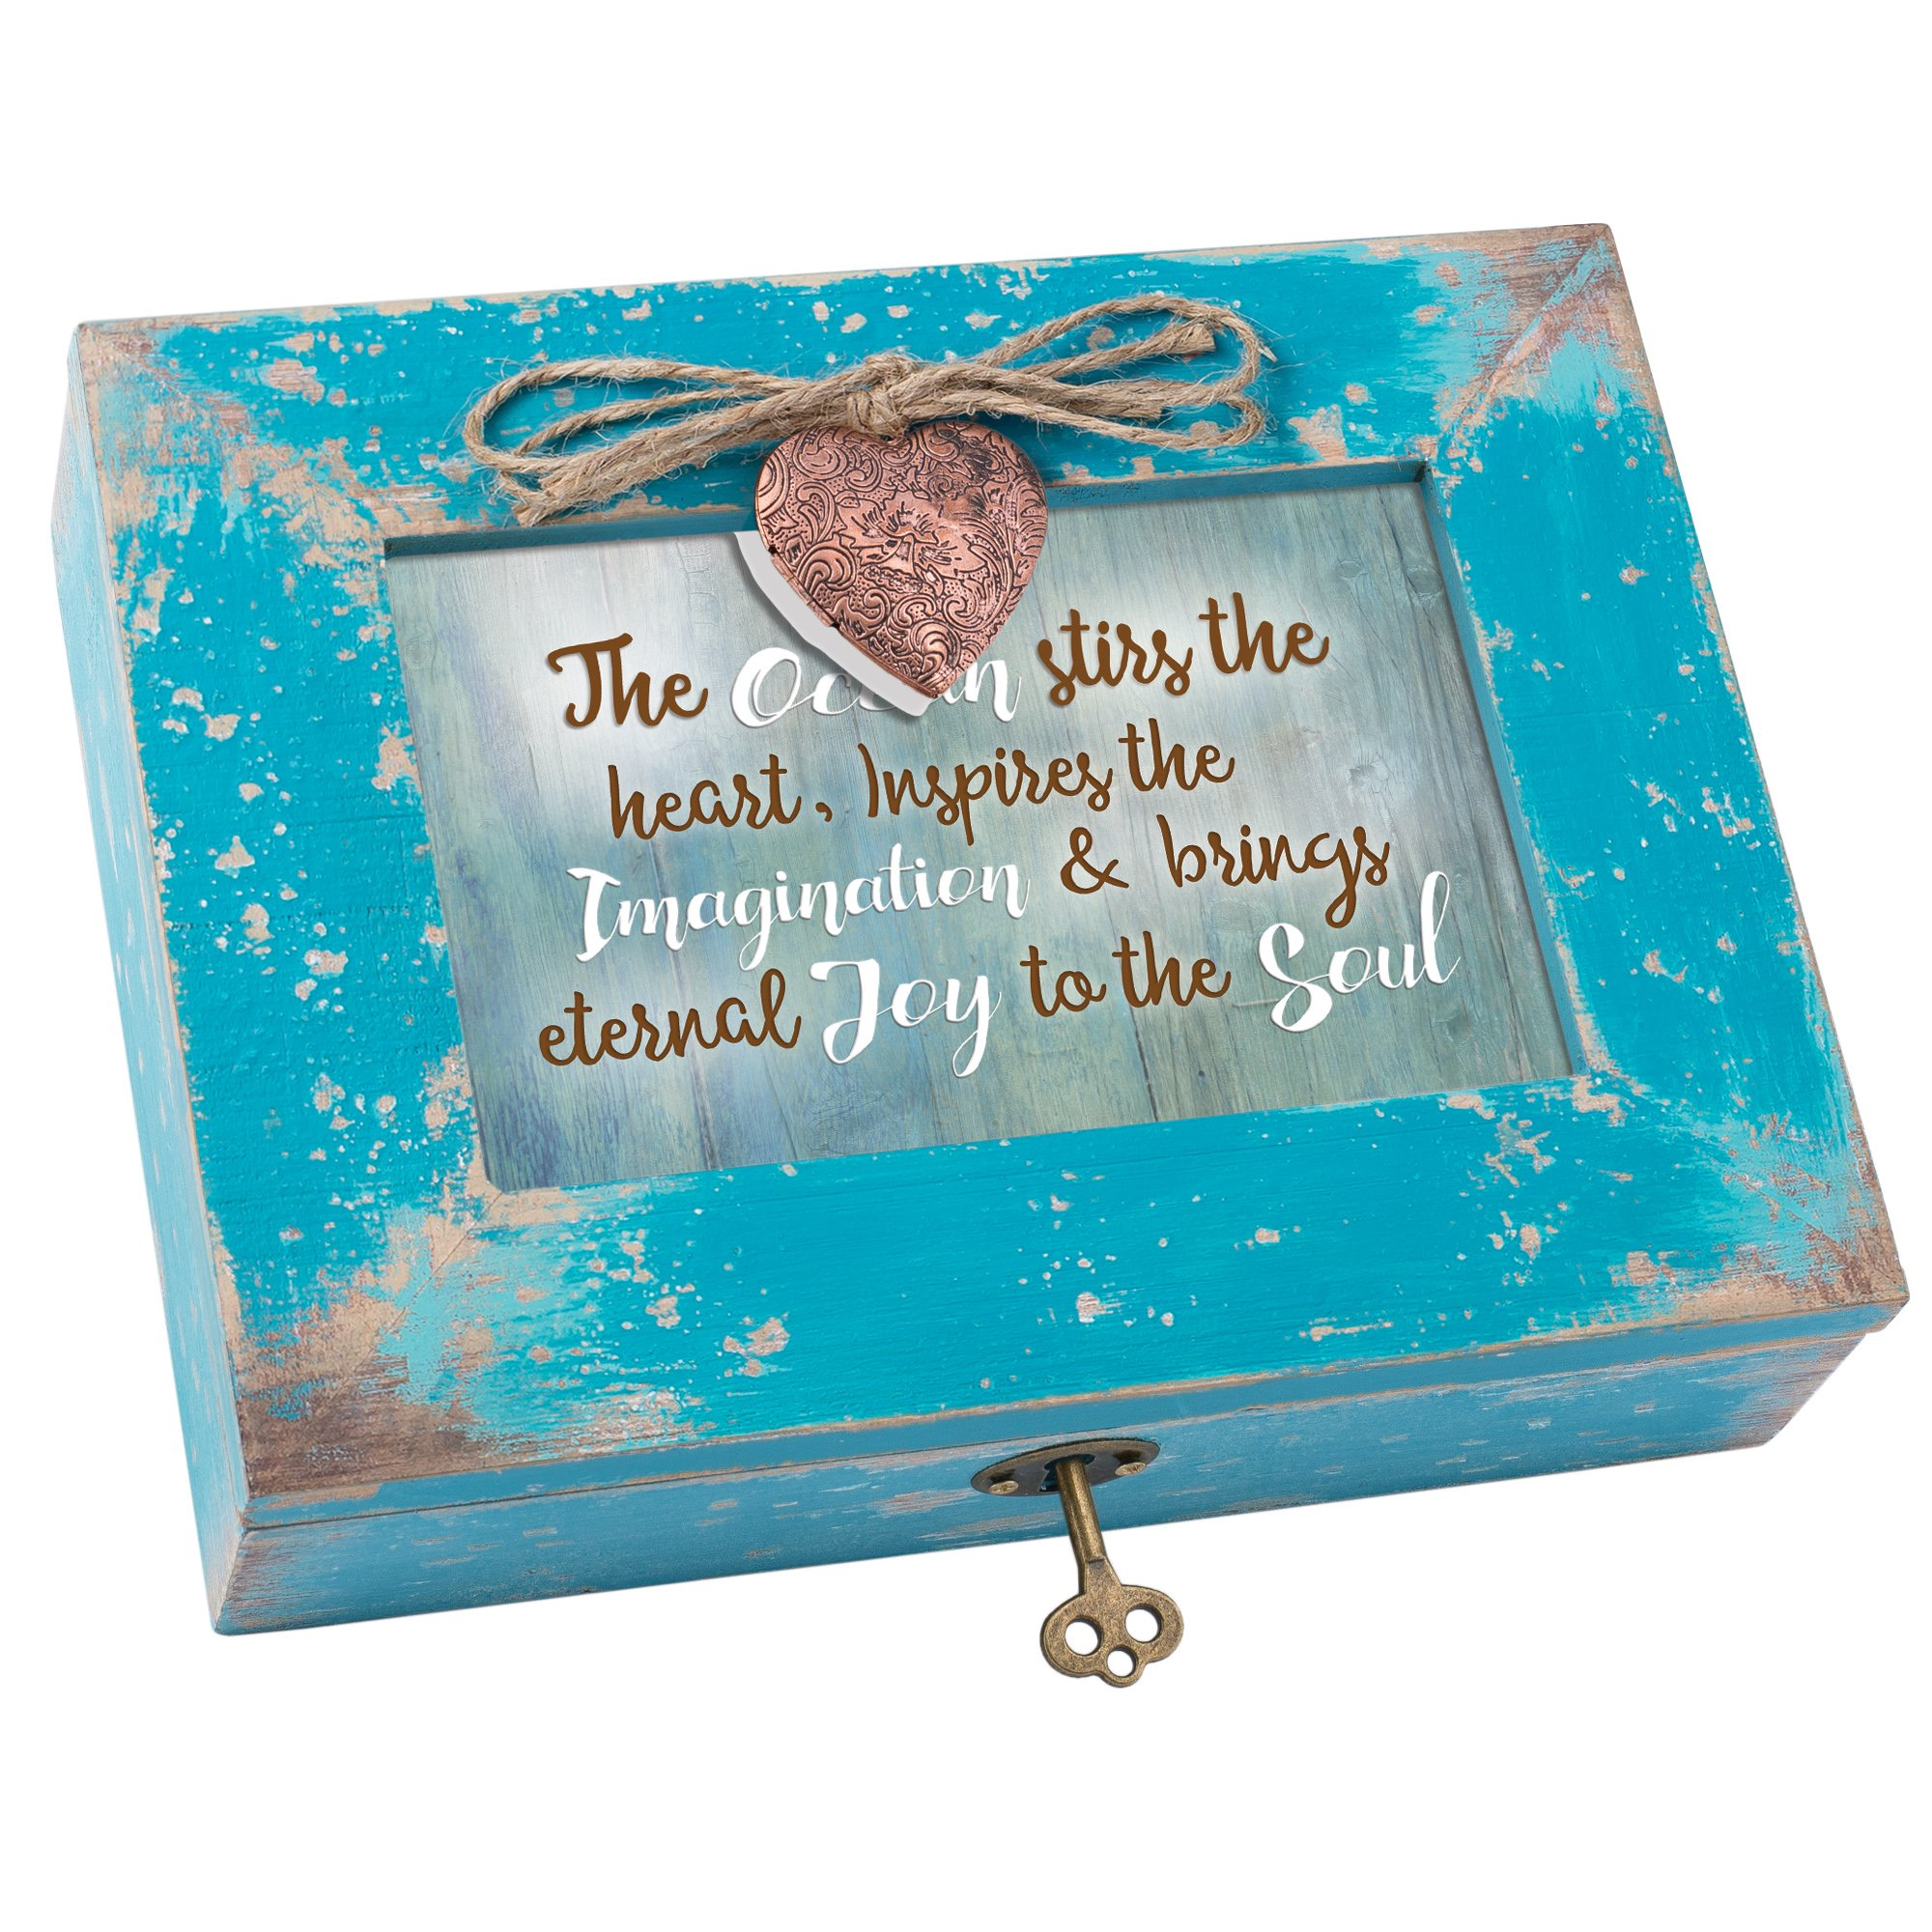 The Ocean Inspires Brings Joy Distressed Teal Blue Wood Locket Music Box Plays You Light Up My Life